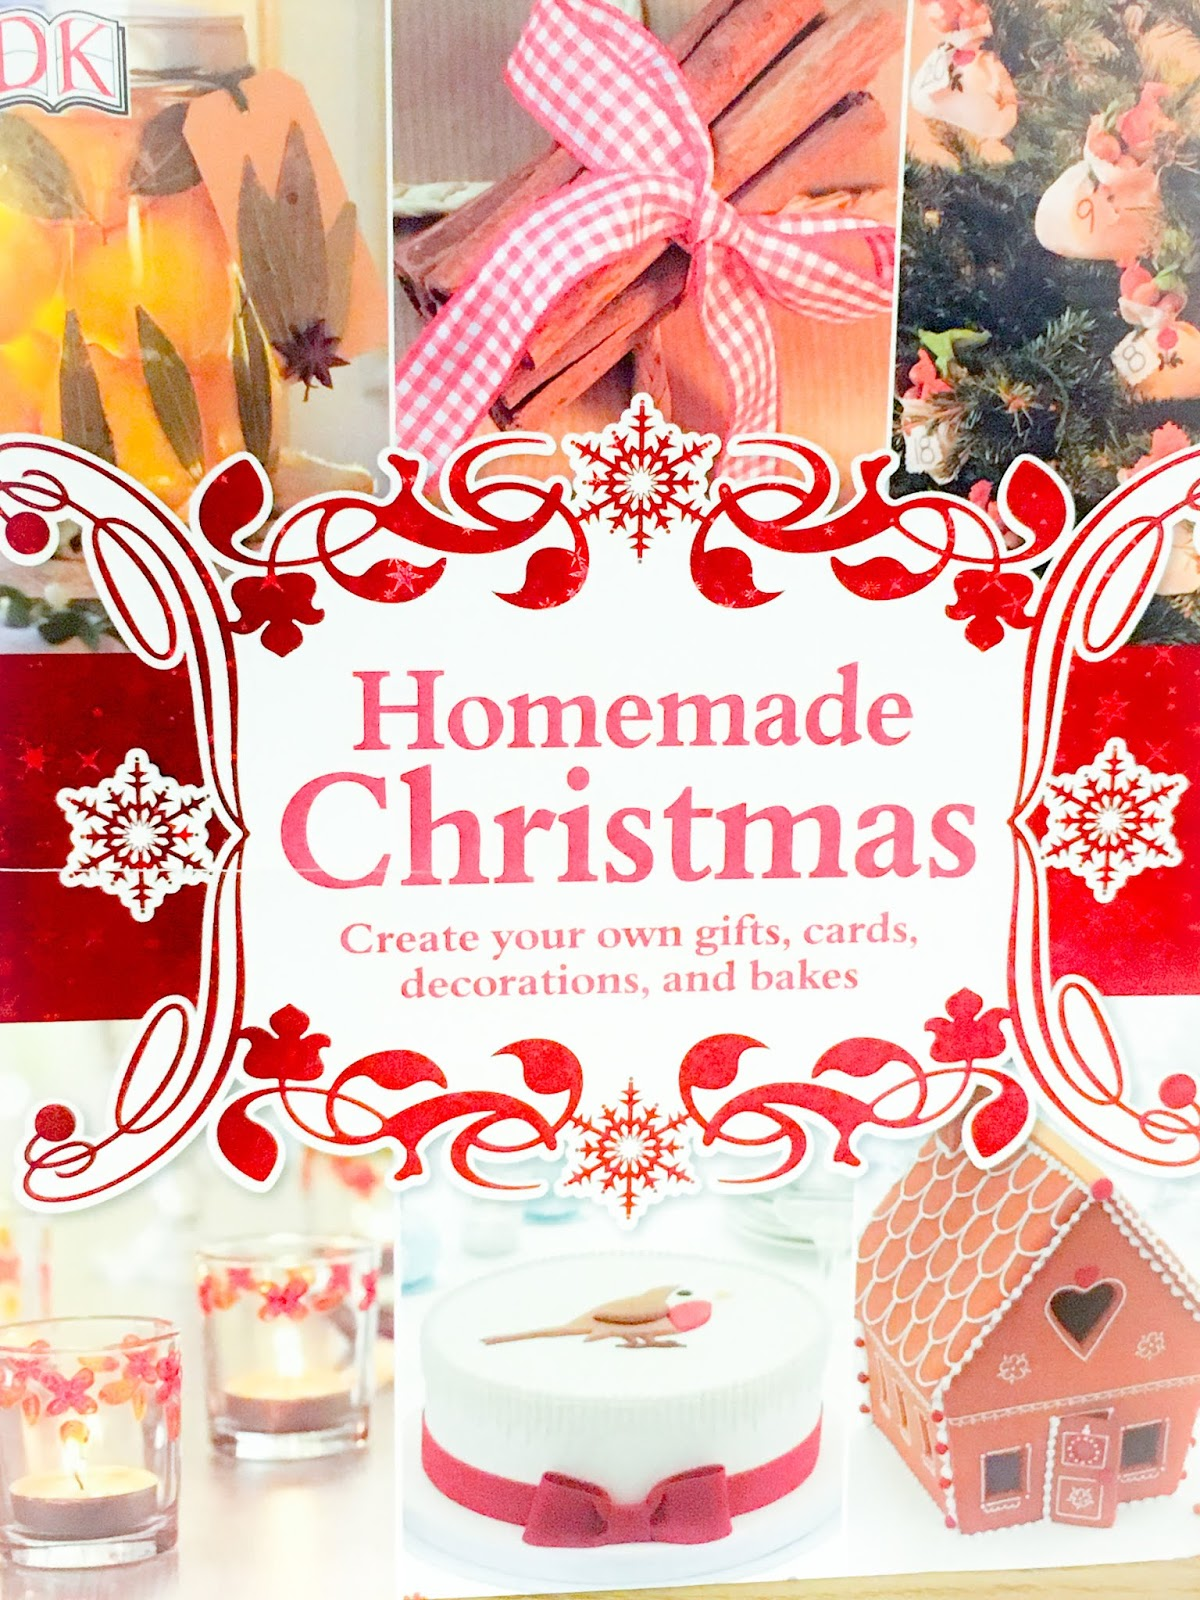 Homemade Christmas by DK front cover